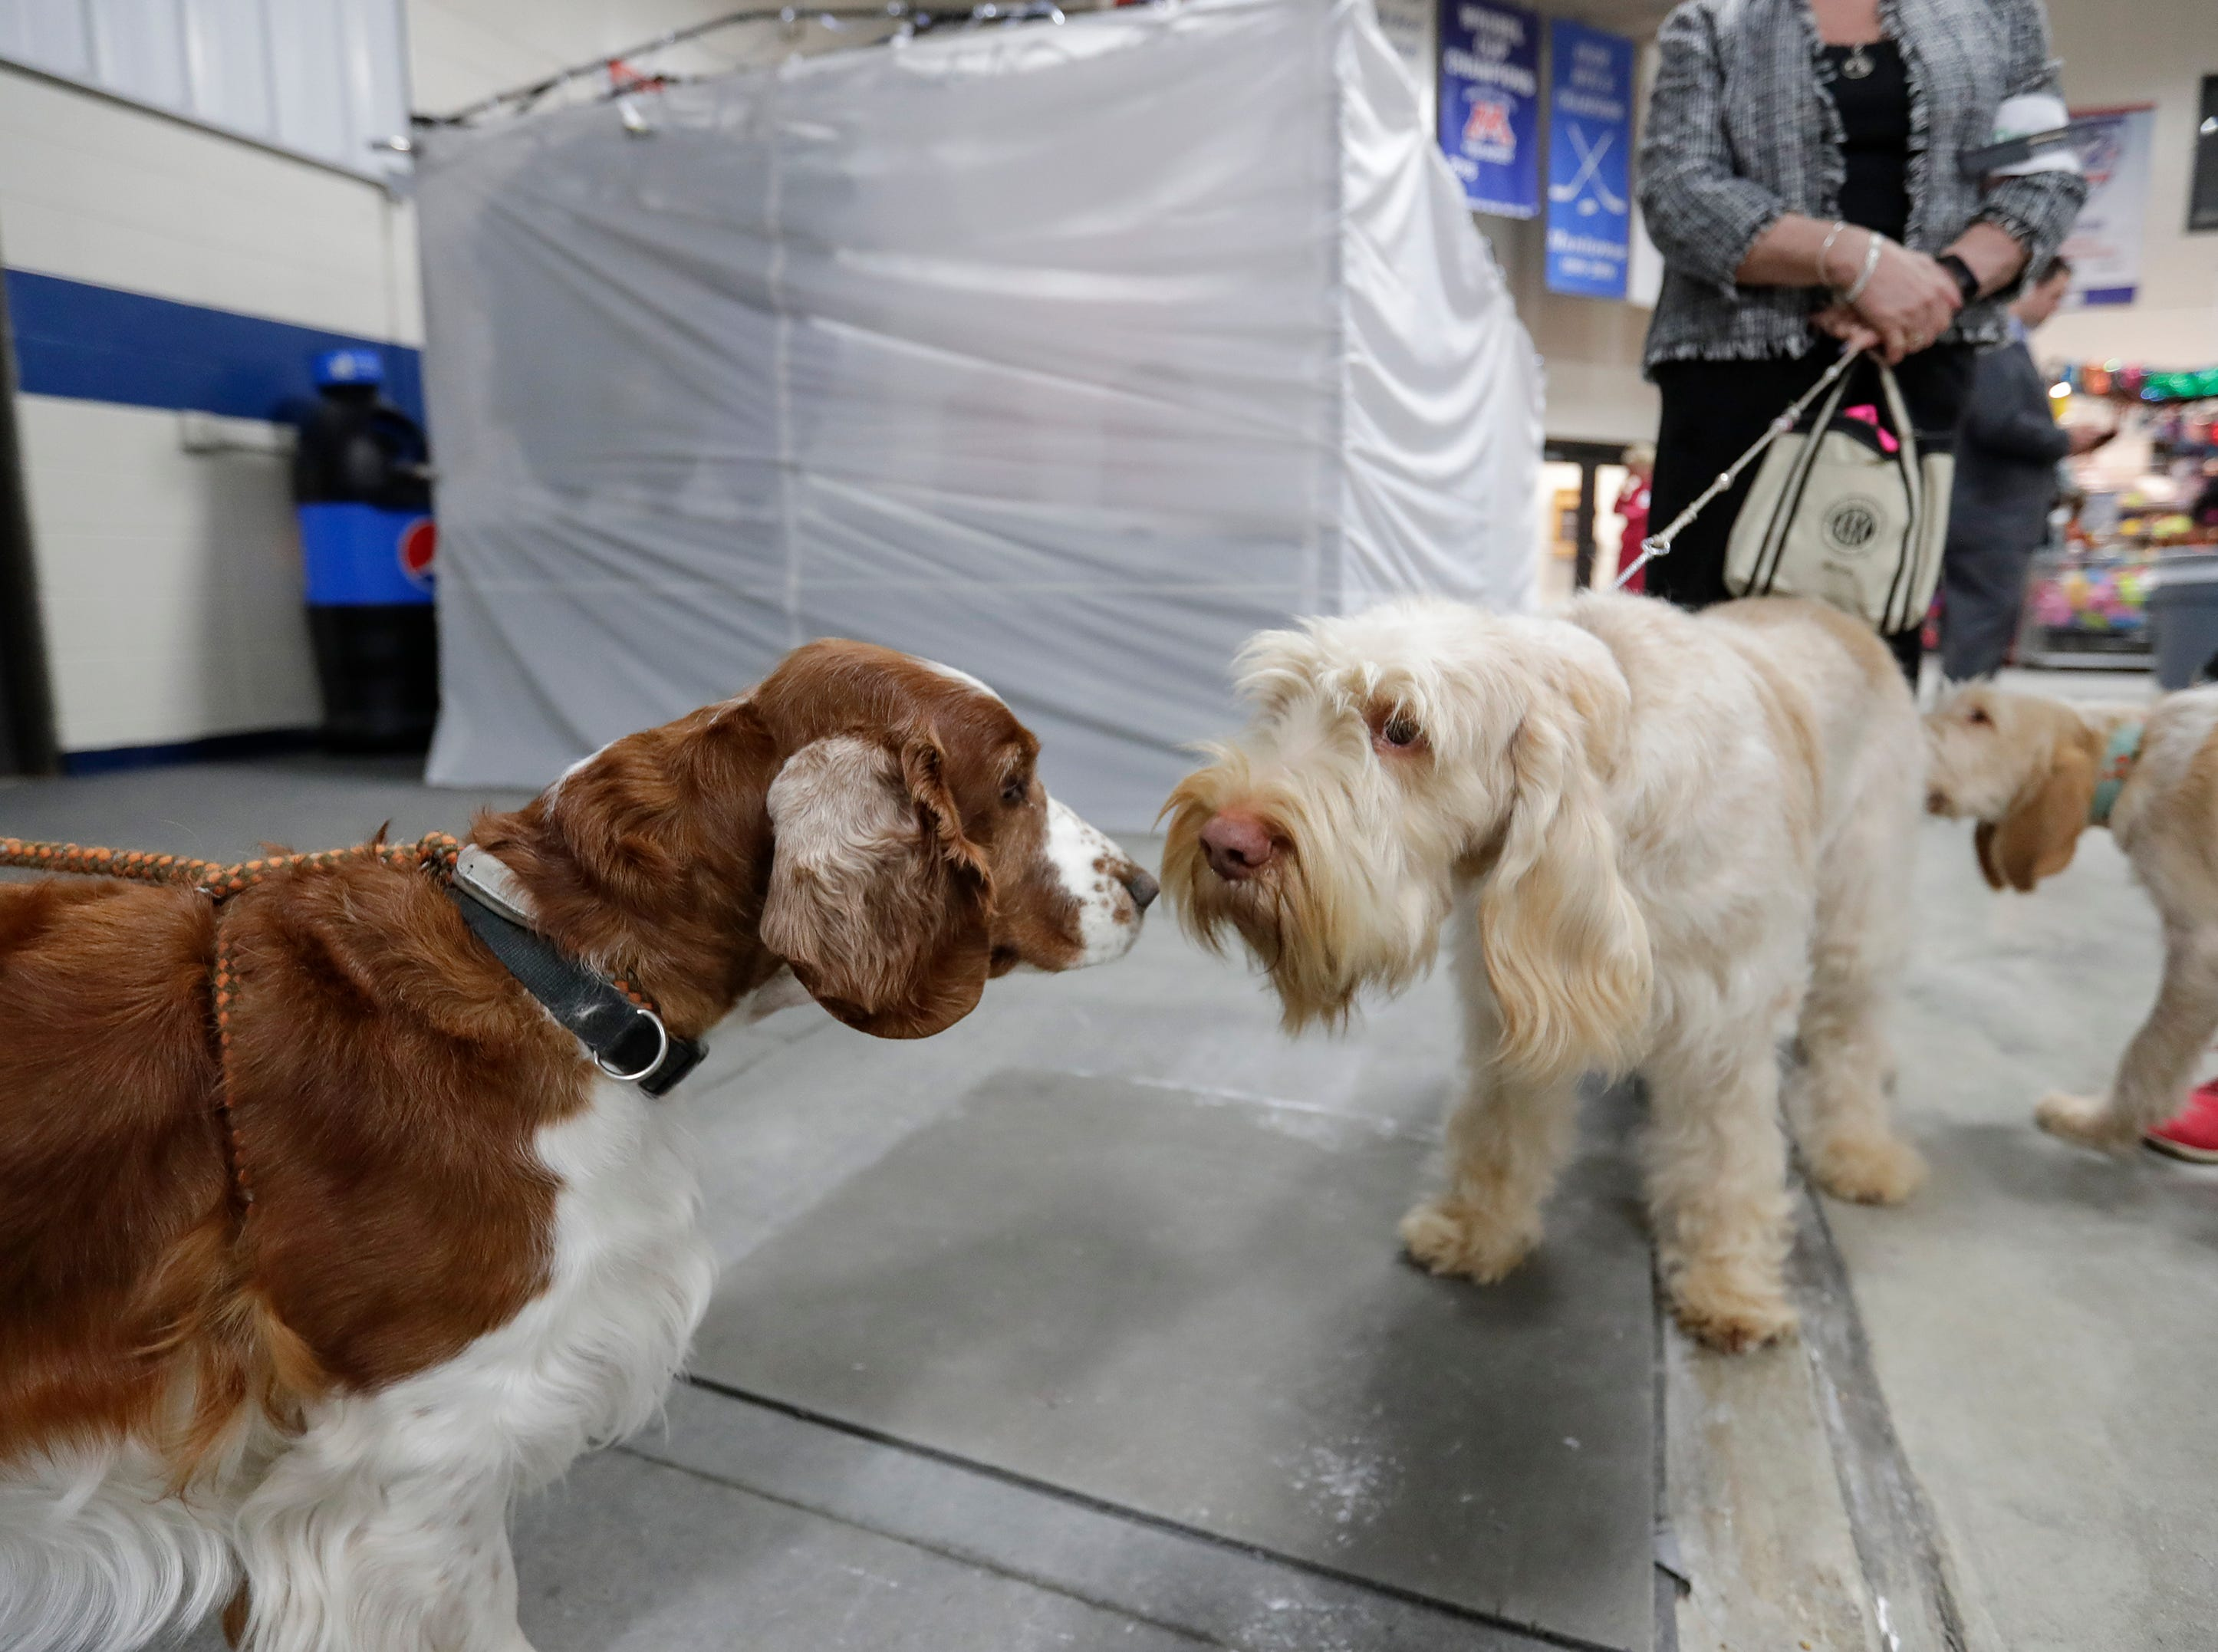 Dogs sniff check each other out during the Northeast Wisconsin Dog Show Classic at the Manitowoc County Expo Center Thursday, March 28, 2019, in Manitowoc, Wis. Joshua Clark/USA TODAY NETWORK-Wisconsin